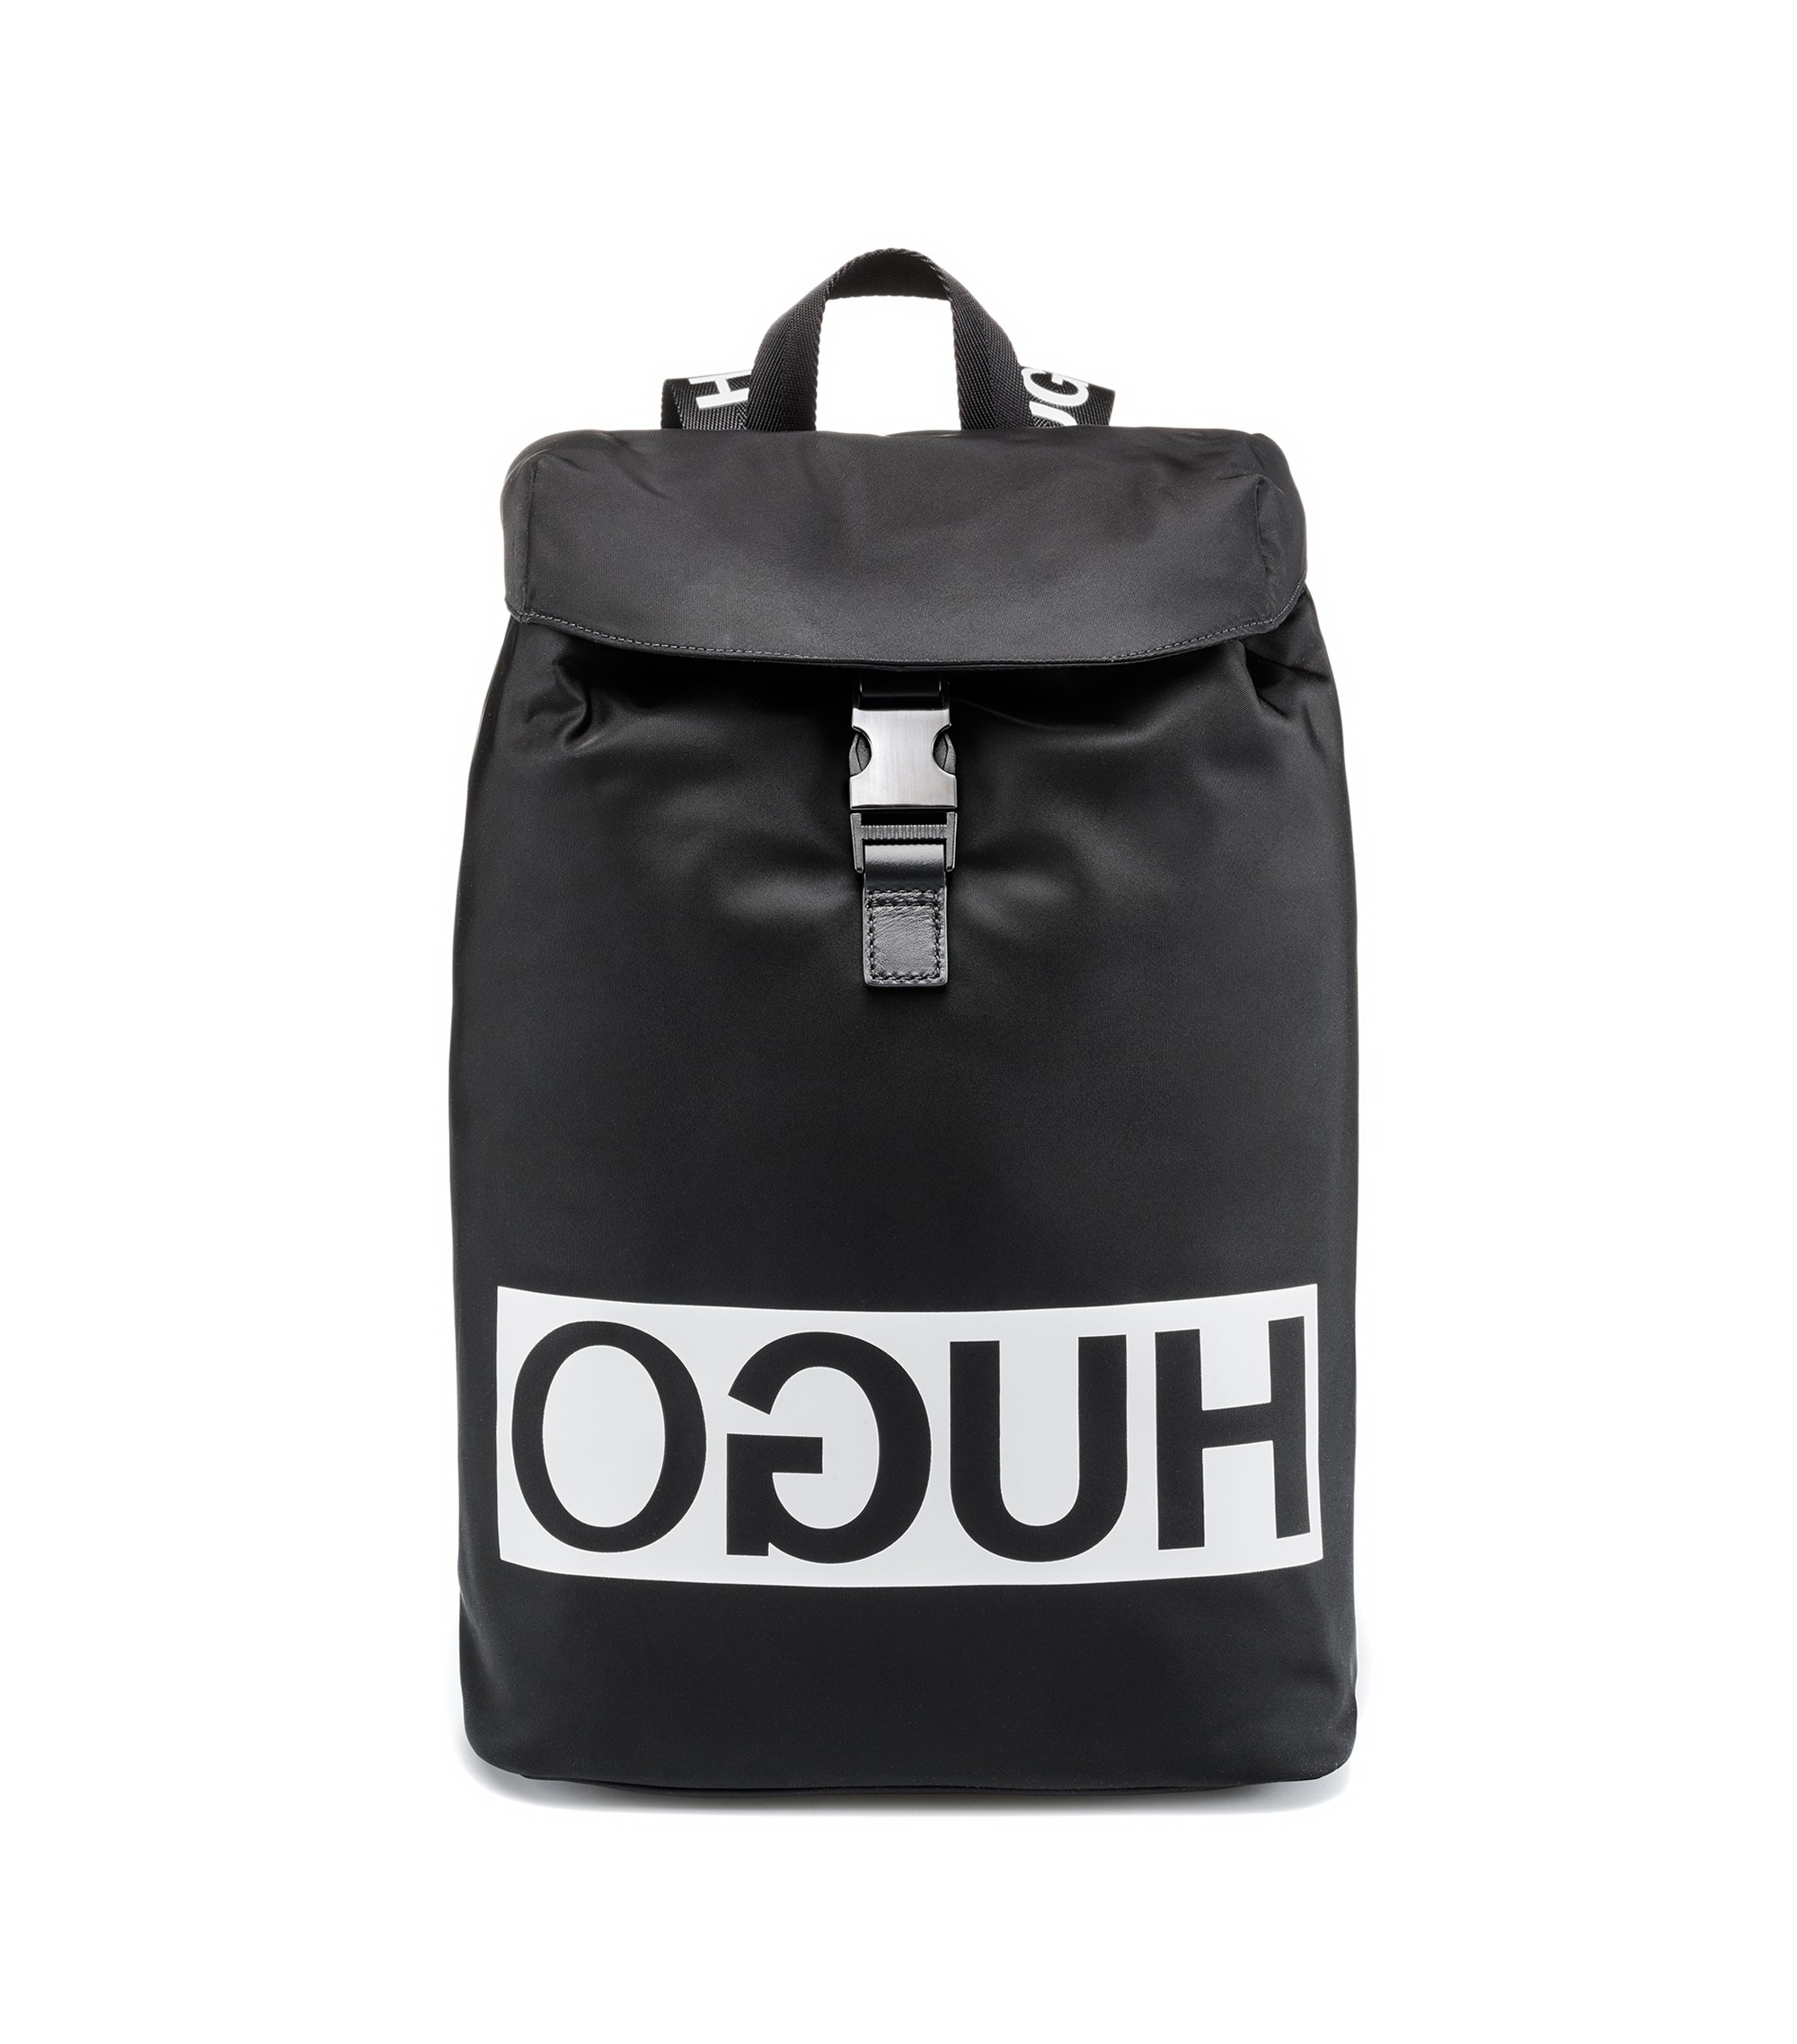 Reverse-logo backpack in nylon gabardine with leather trims, Black